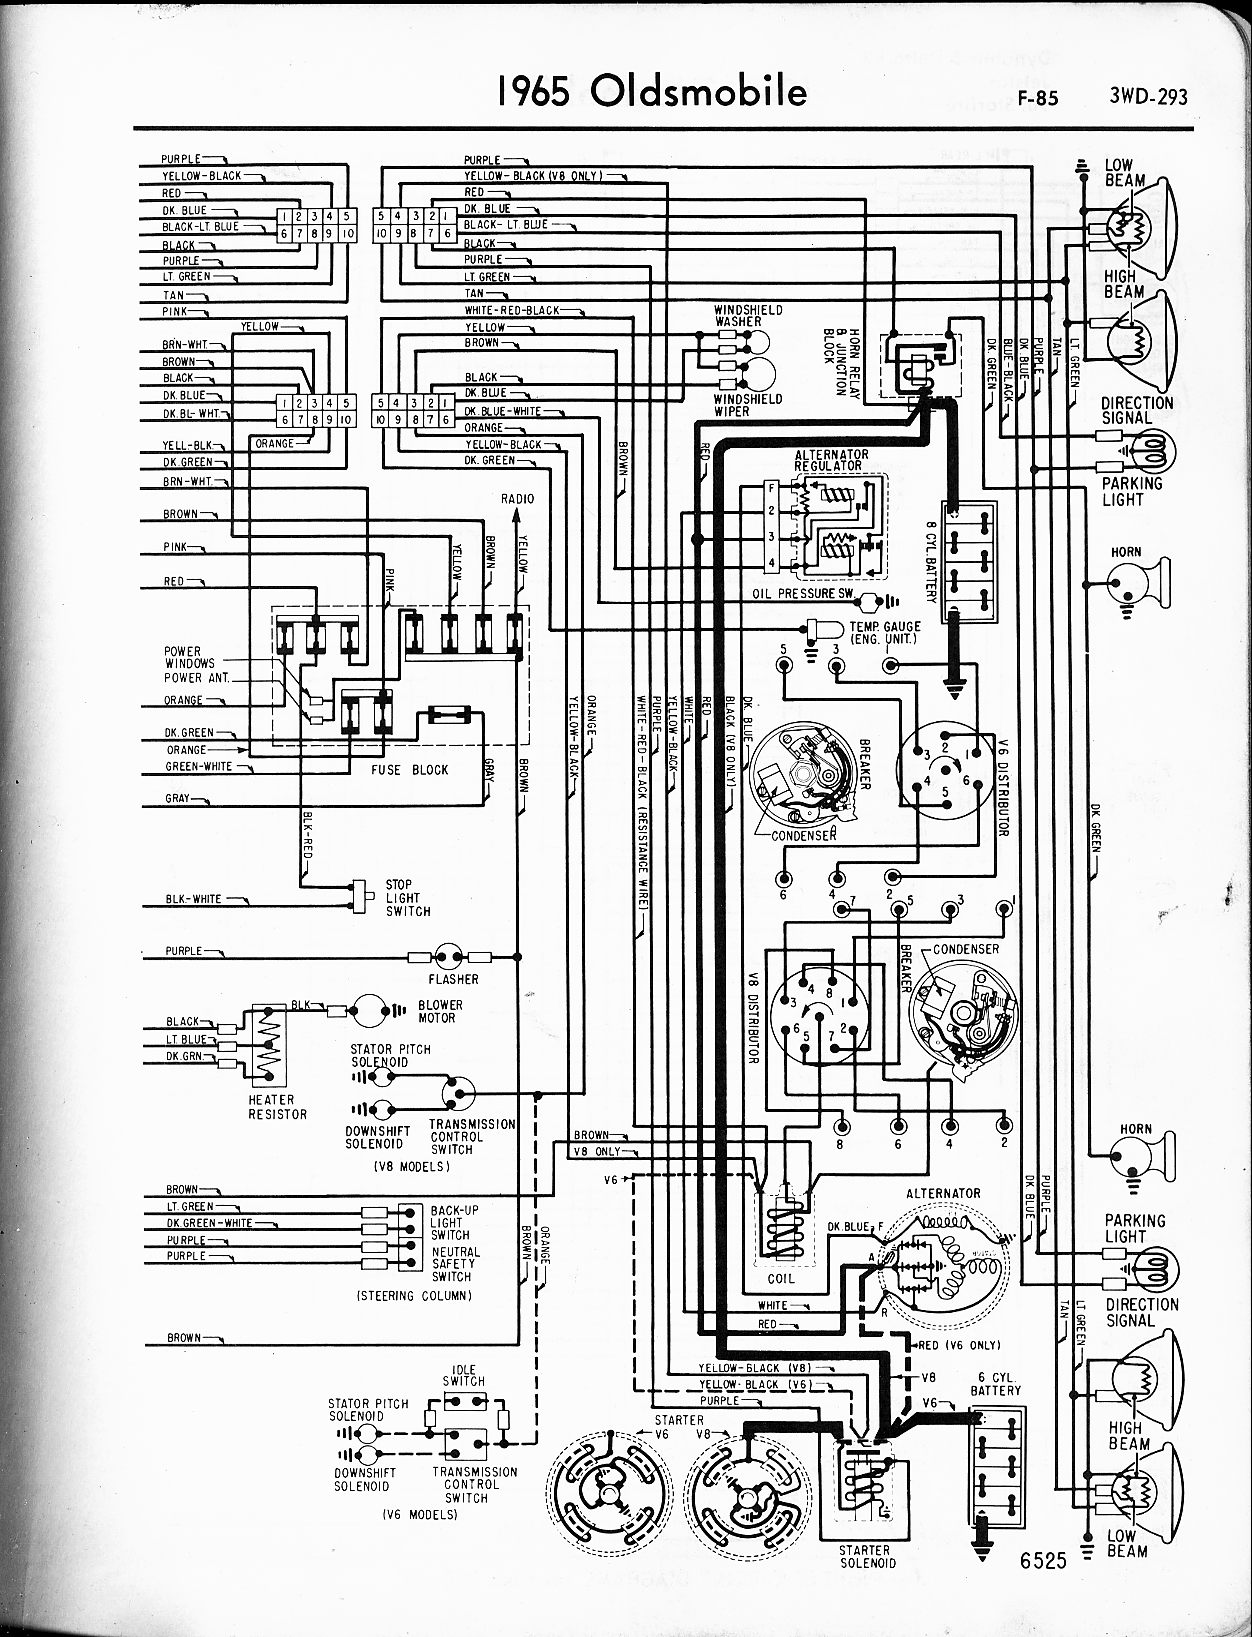 1965 Oldsmobile 442 Wiring Diagram Reveolution Of 1986 Diagrams The Old Car Manual Project Rh Oldcarmanualproject Com 1964 1966